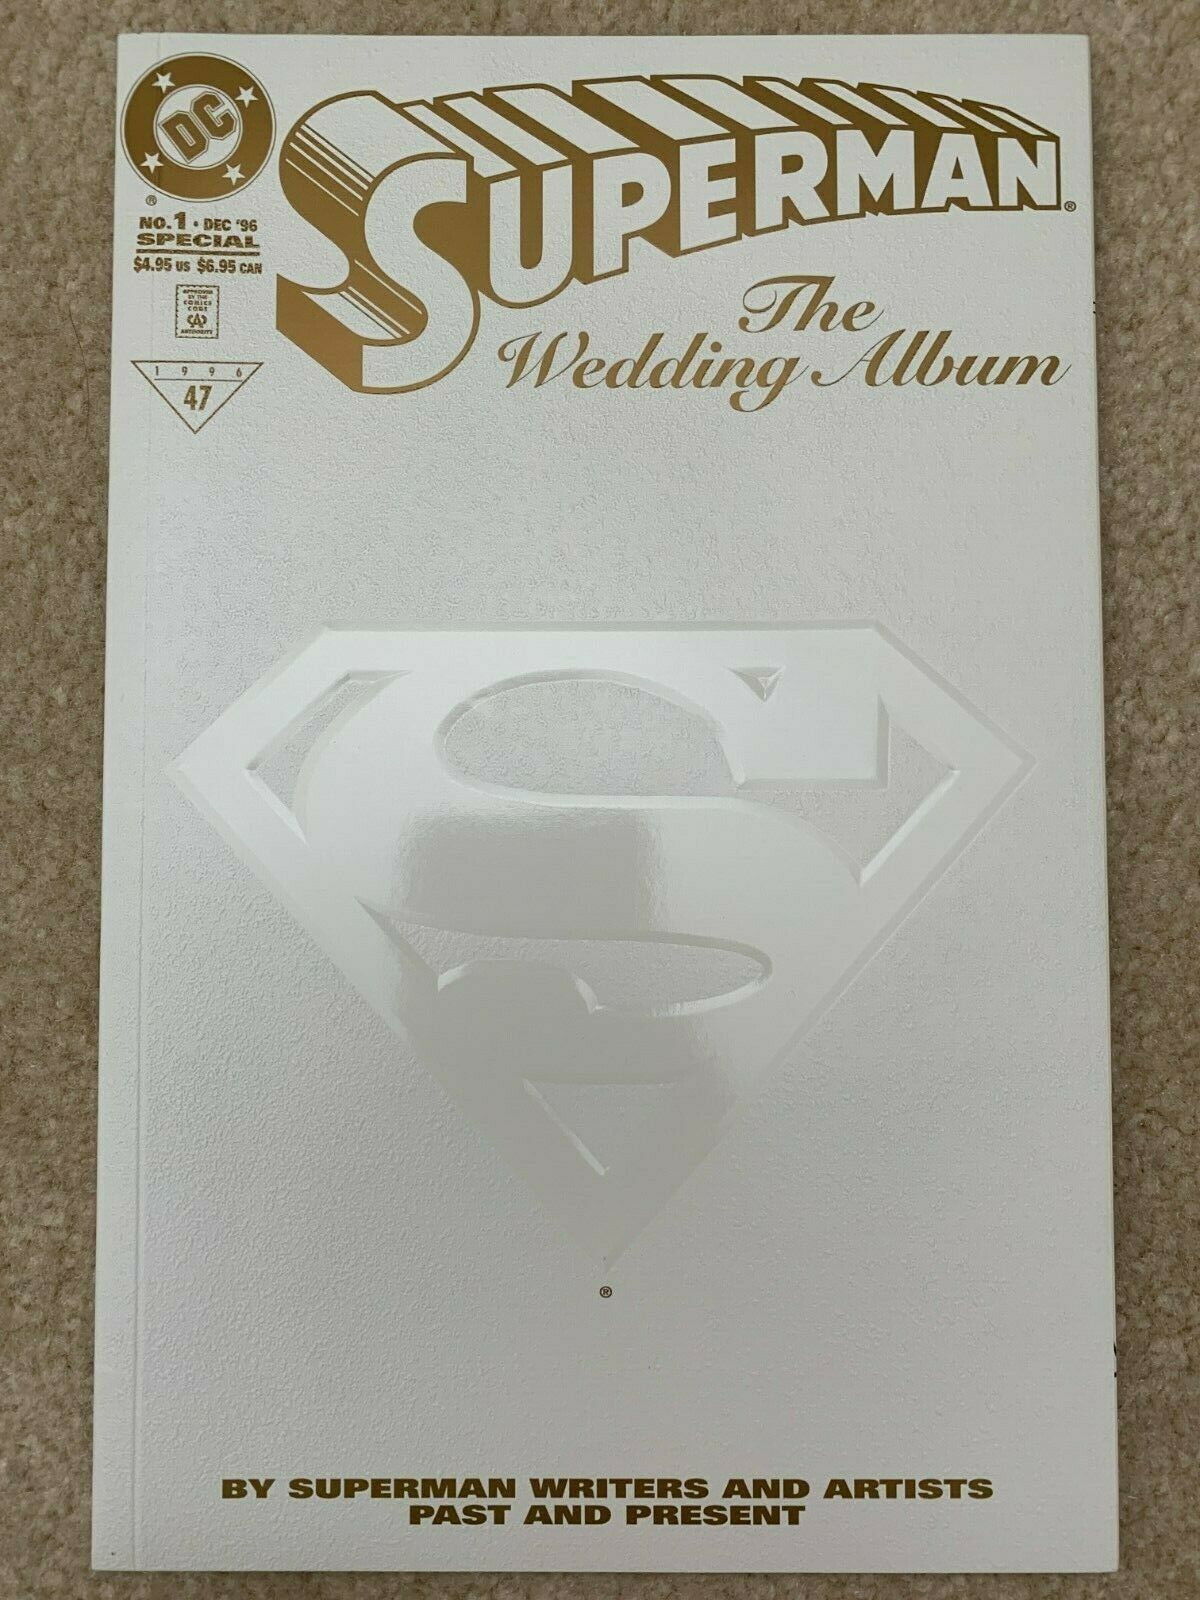 SUPERMAN: THE WEDDING ALBUM #1 (1996) RRP Limited Gold Edition #73 of 250 RARE